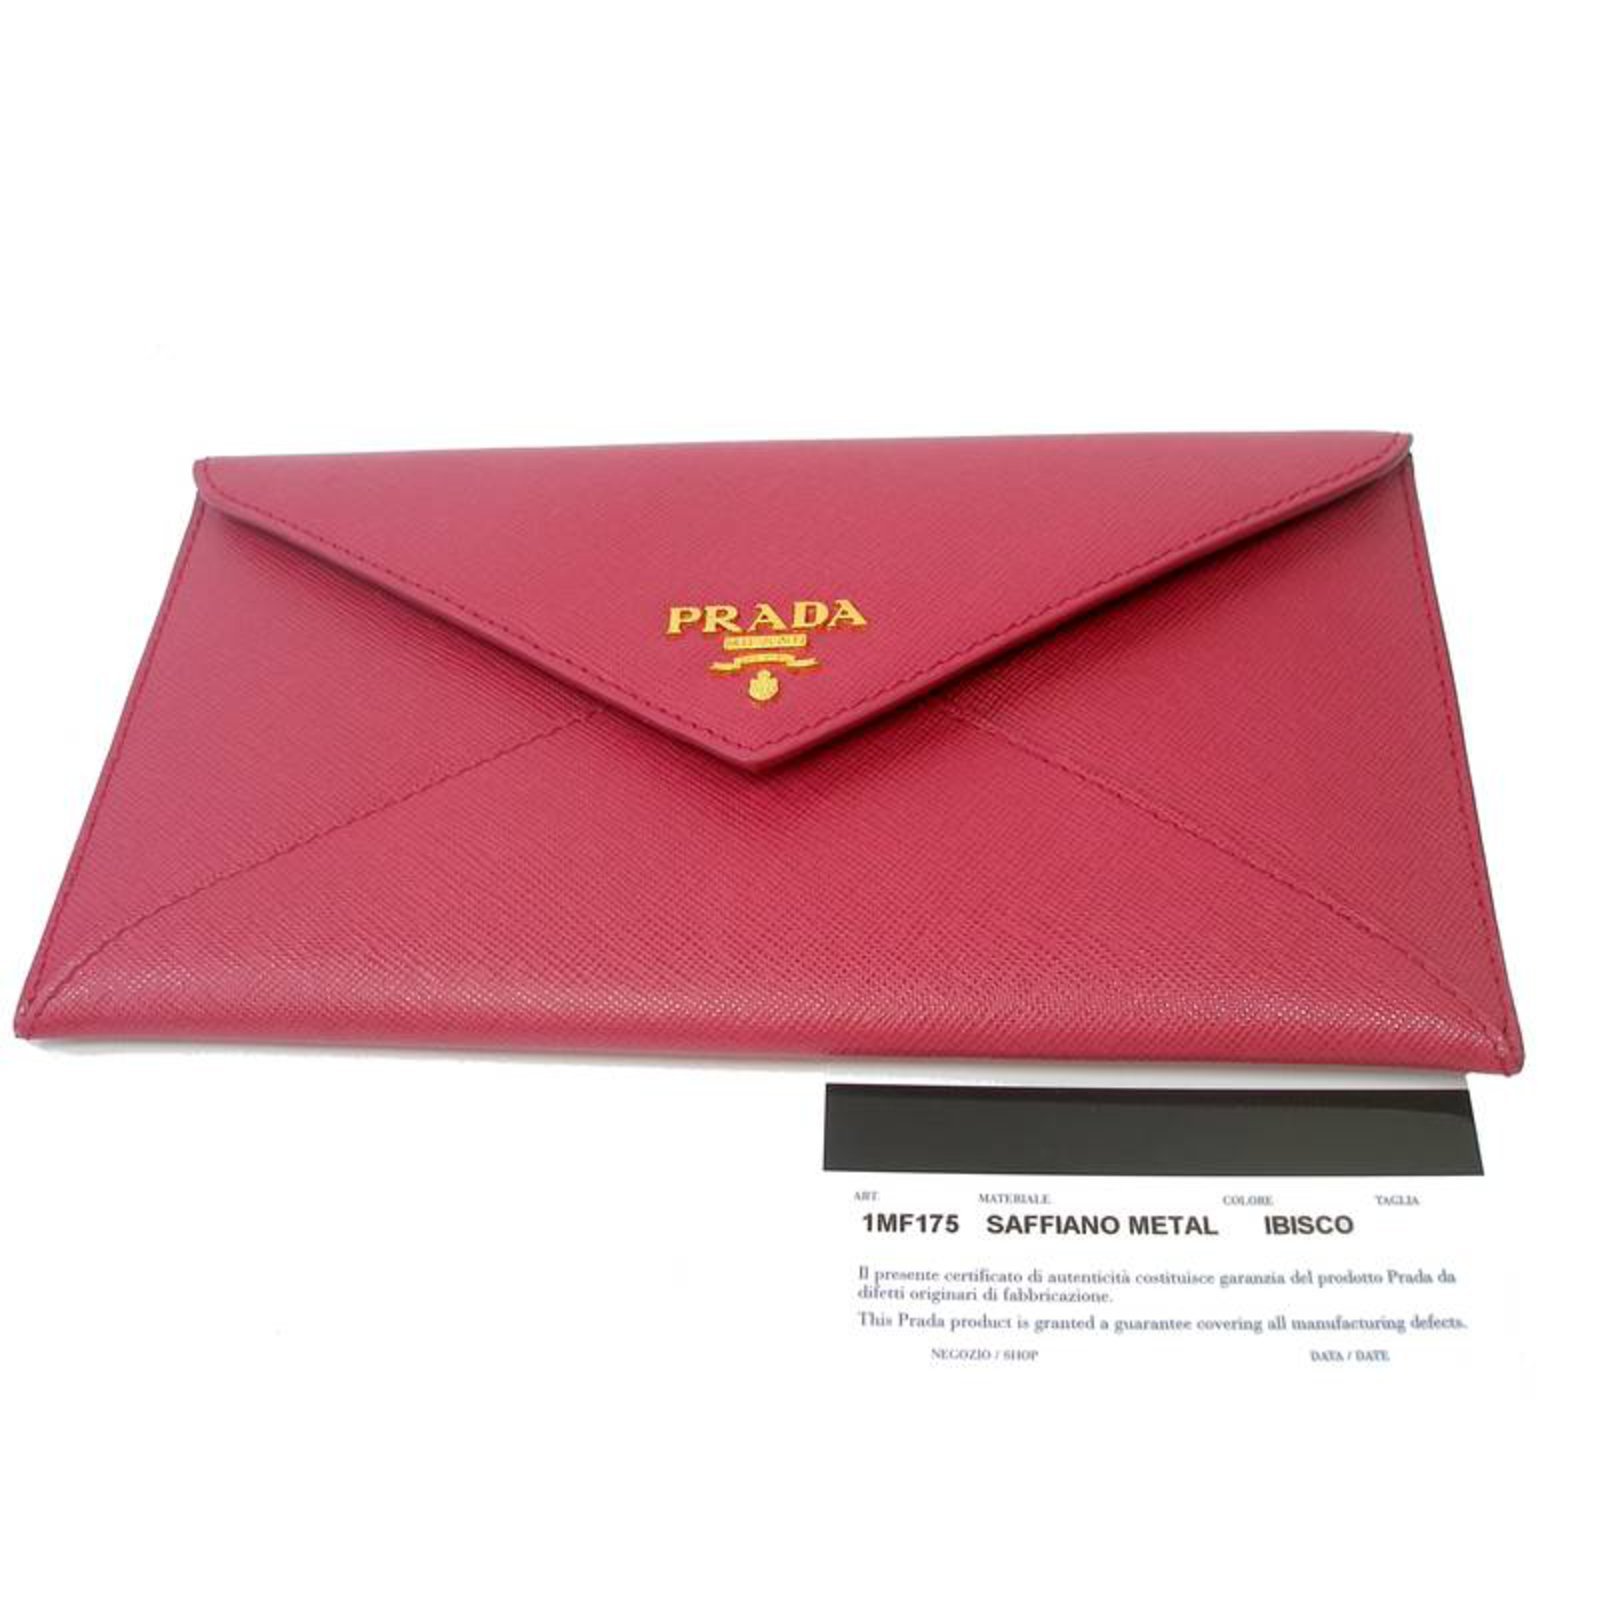 f27022f0651c08 ... usa prada pouch clutch purses wallets cases leather pink ref.26968 joli  closet 1e189 bbb60